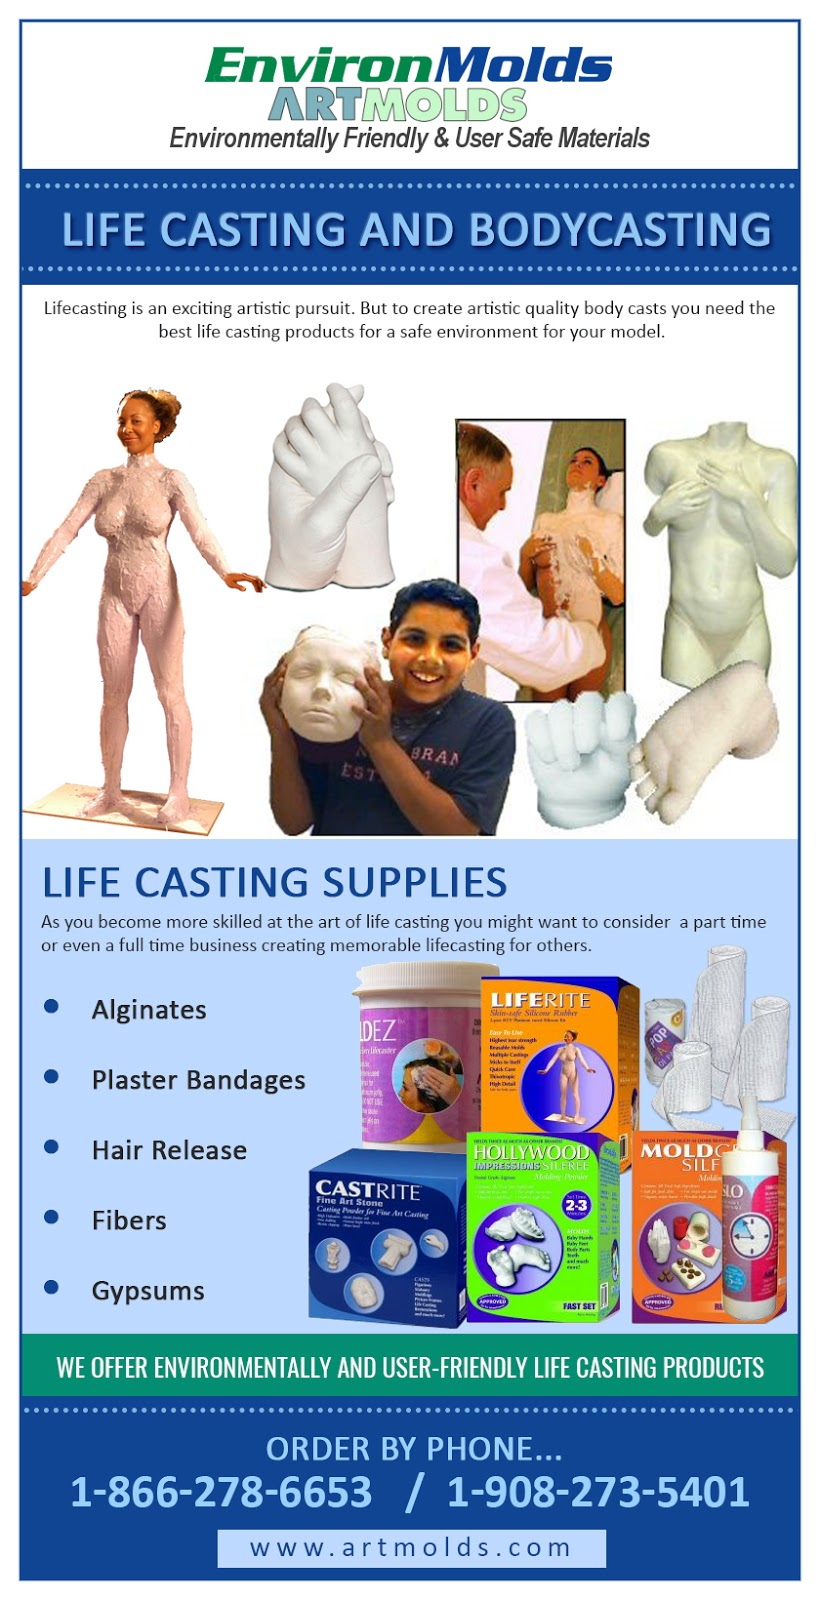 Mold making and Casting products through EnvironMolds, LLC: 2019